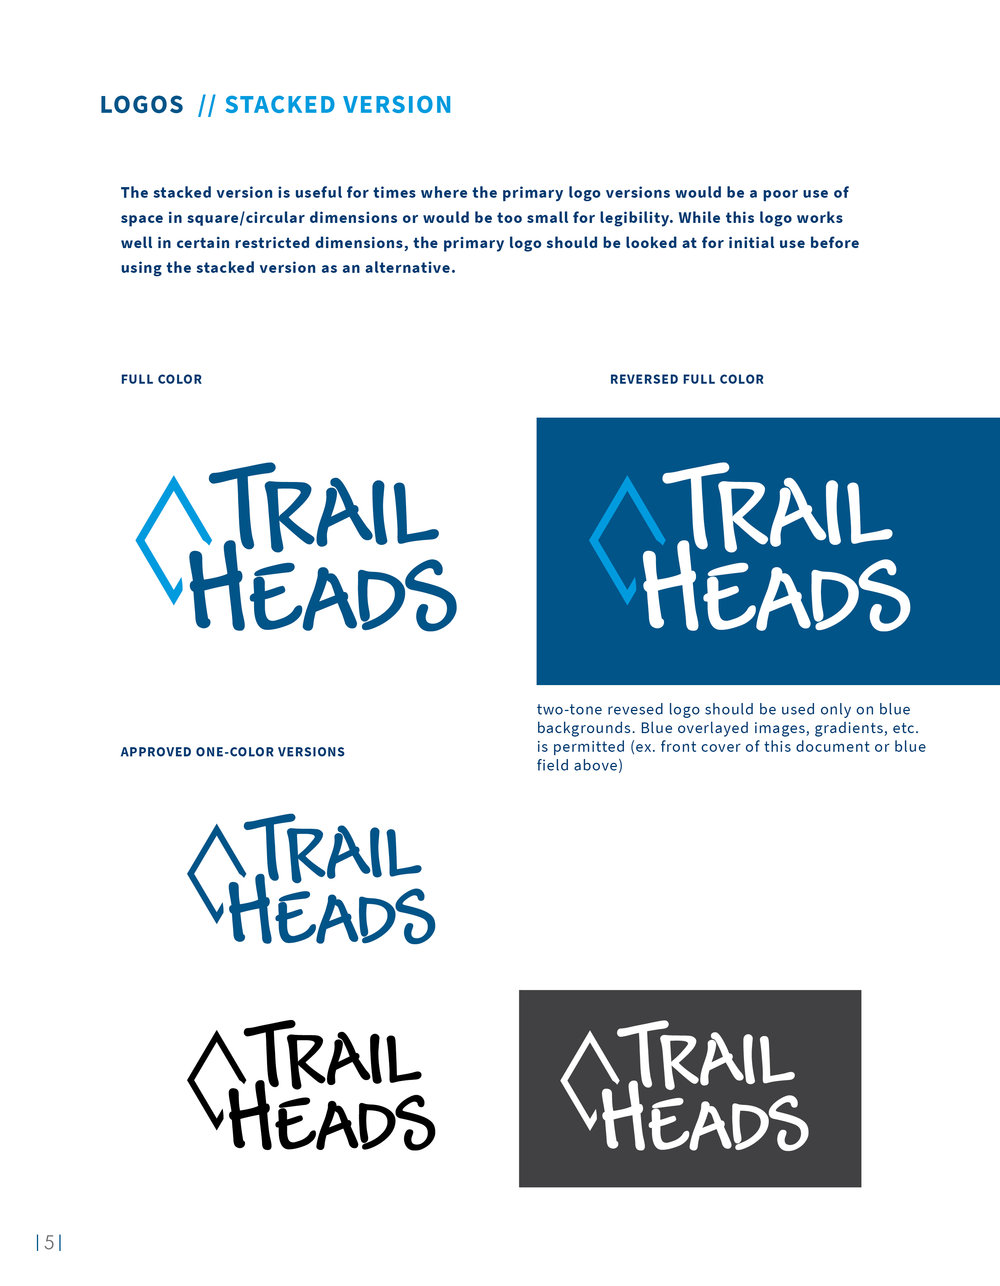 apparel-company-brand-guidelines-design-by-jordan-fretz-design-15.jpg